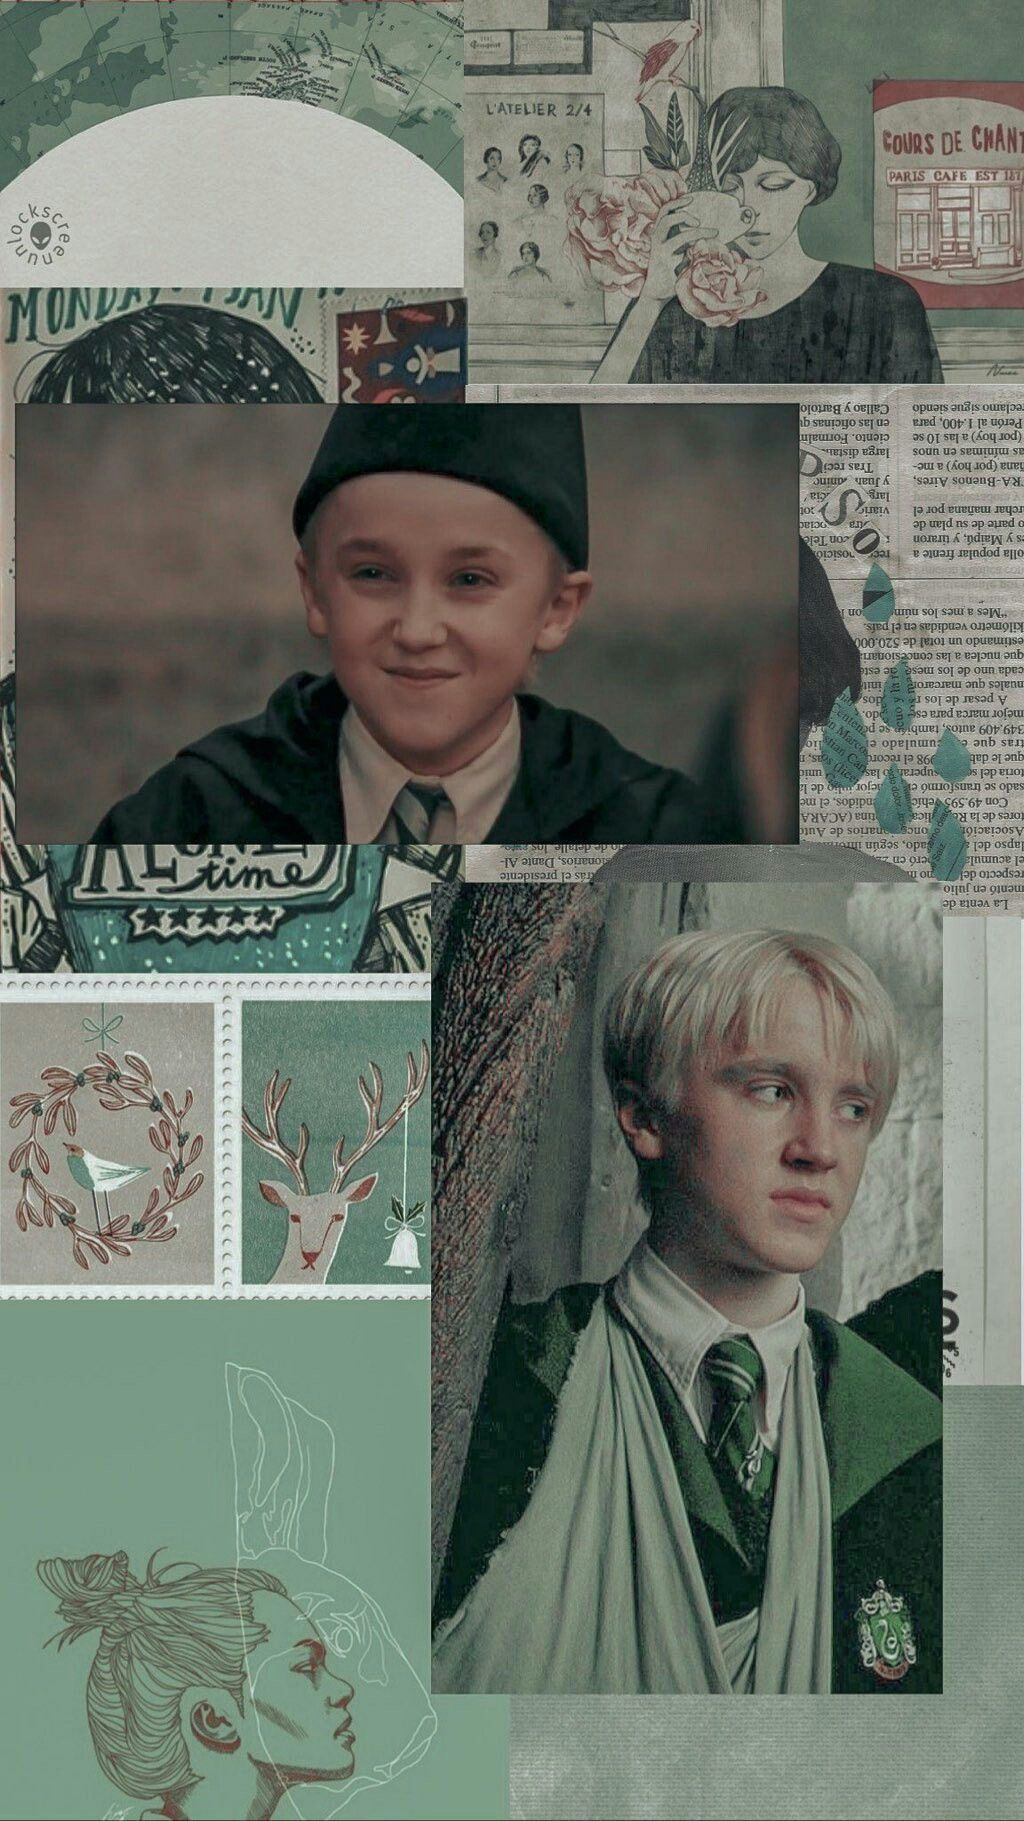 Cosplay Draco Malfoy Wallpaper Iphone Draco Malfoy Wallpaper Iphone Draco Malfoy Sketch Harry Potter Fan In 2020 Harry Potter Images Draco Draco Harry Potter